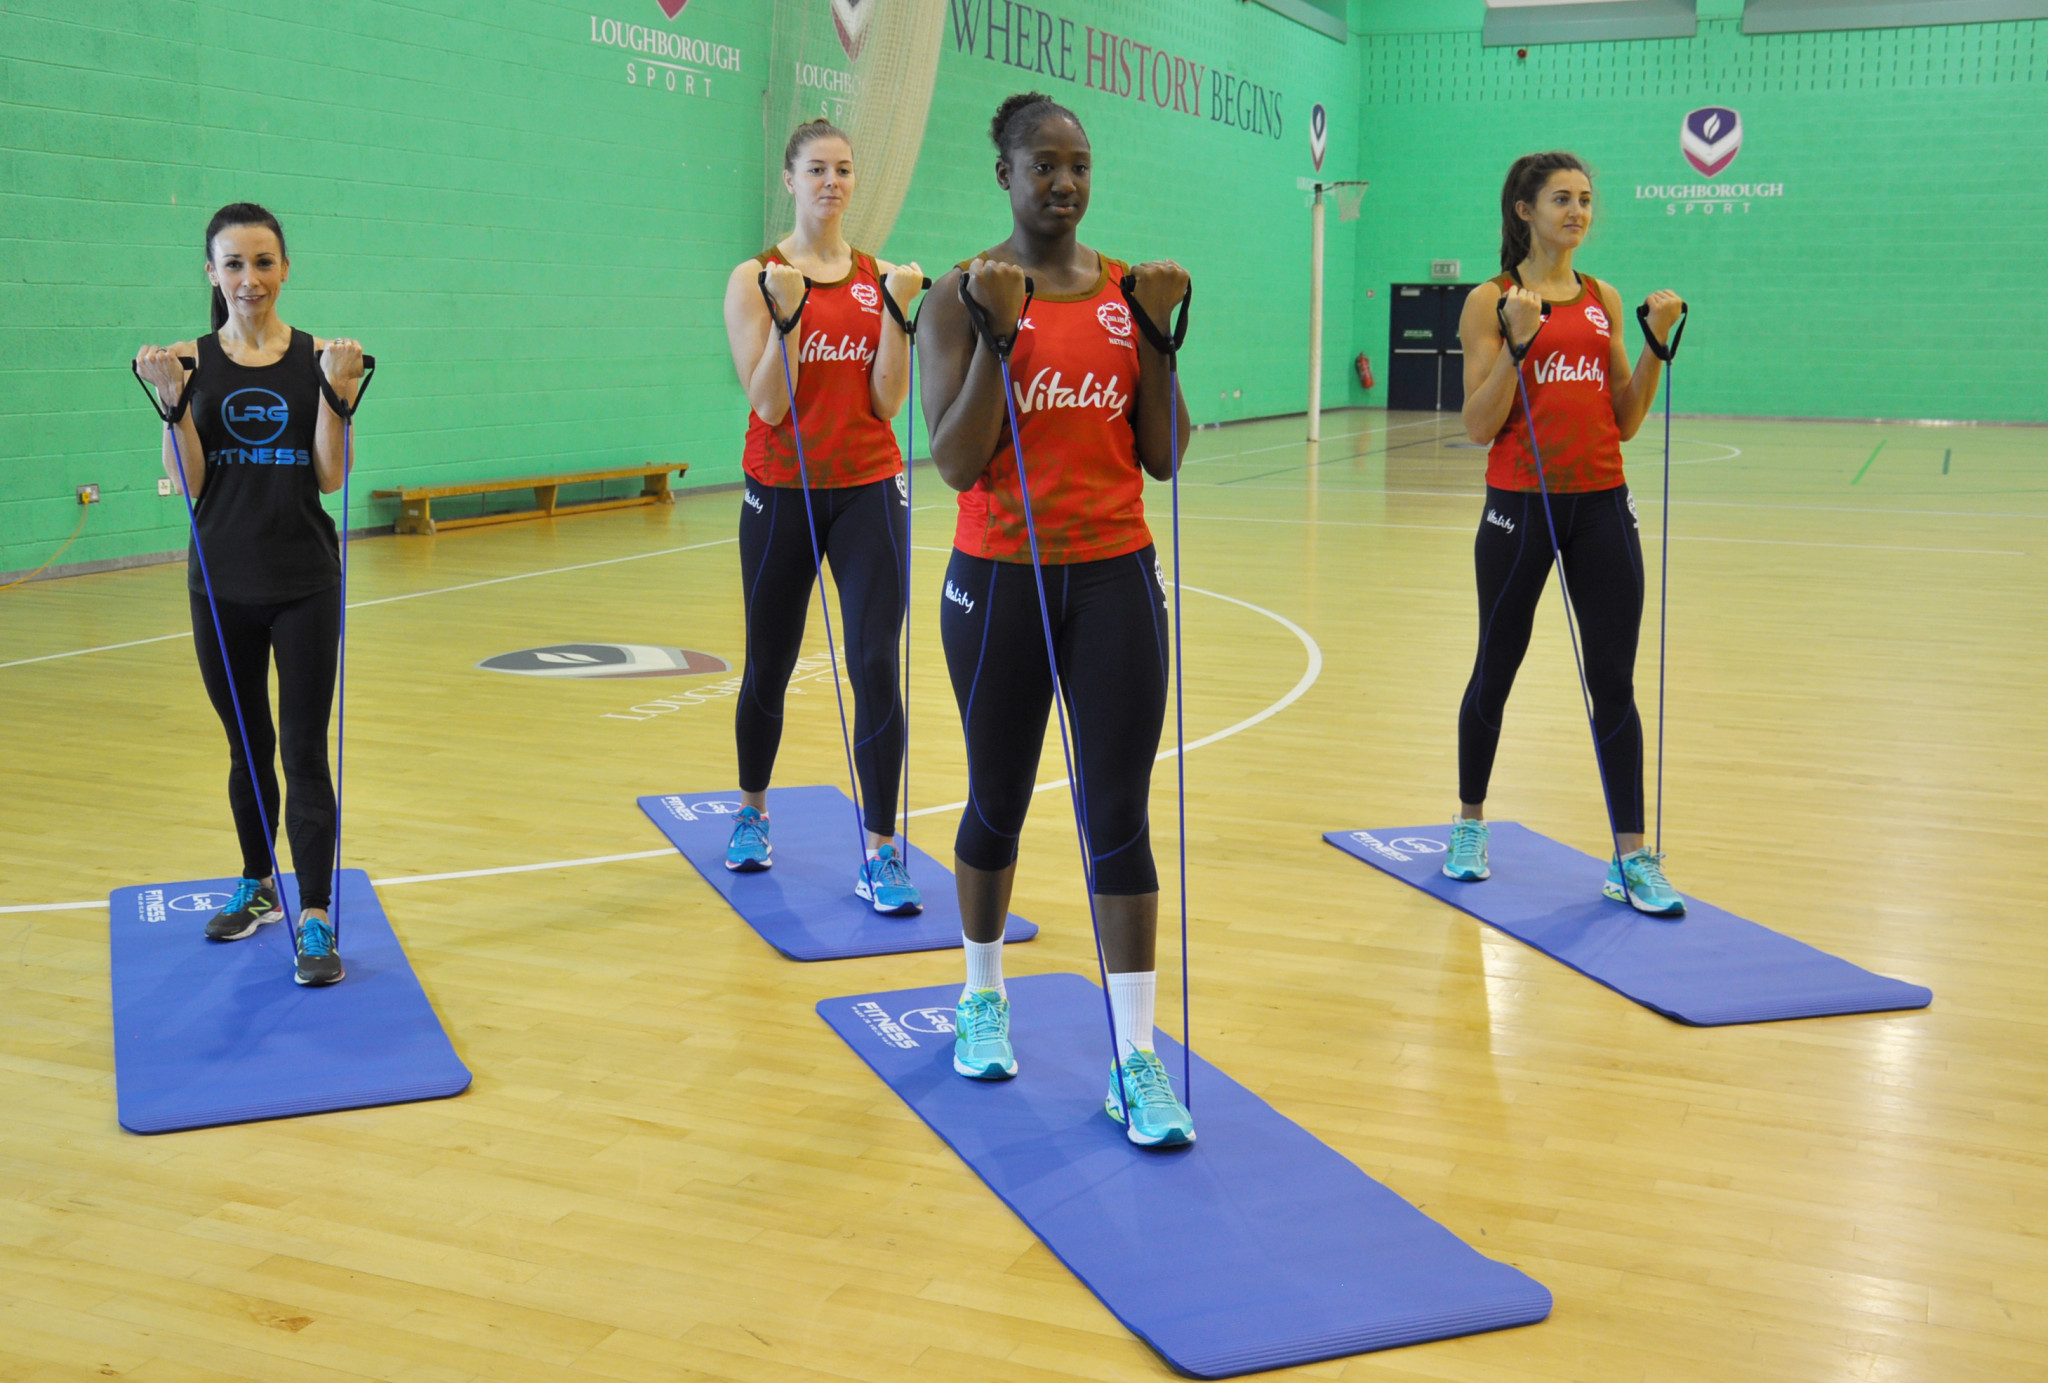 England Netball partners with LRG Fitness to provide training and workouts